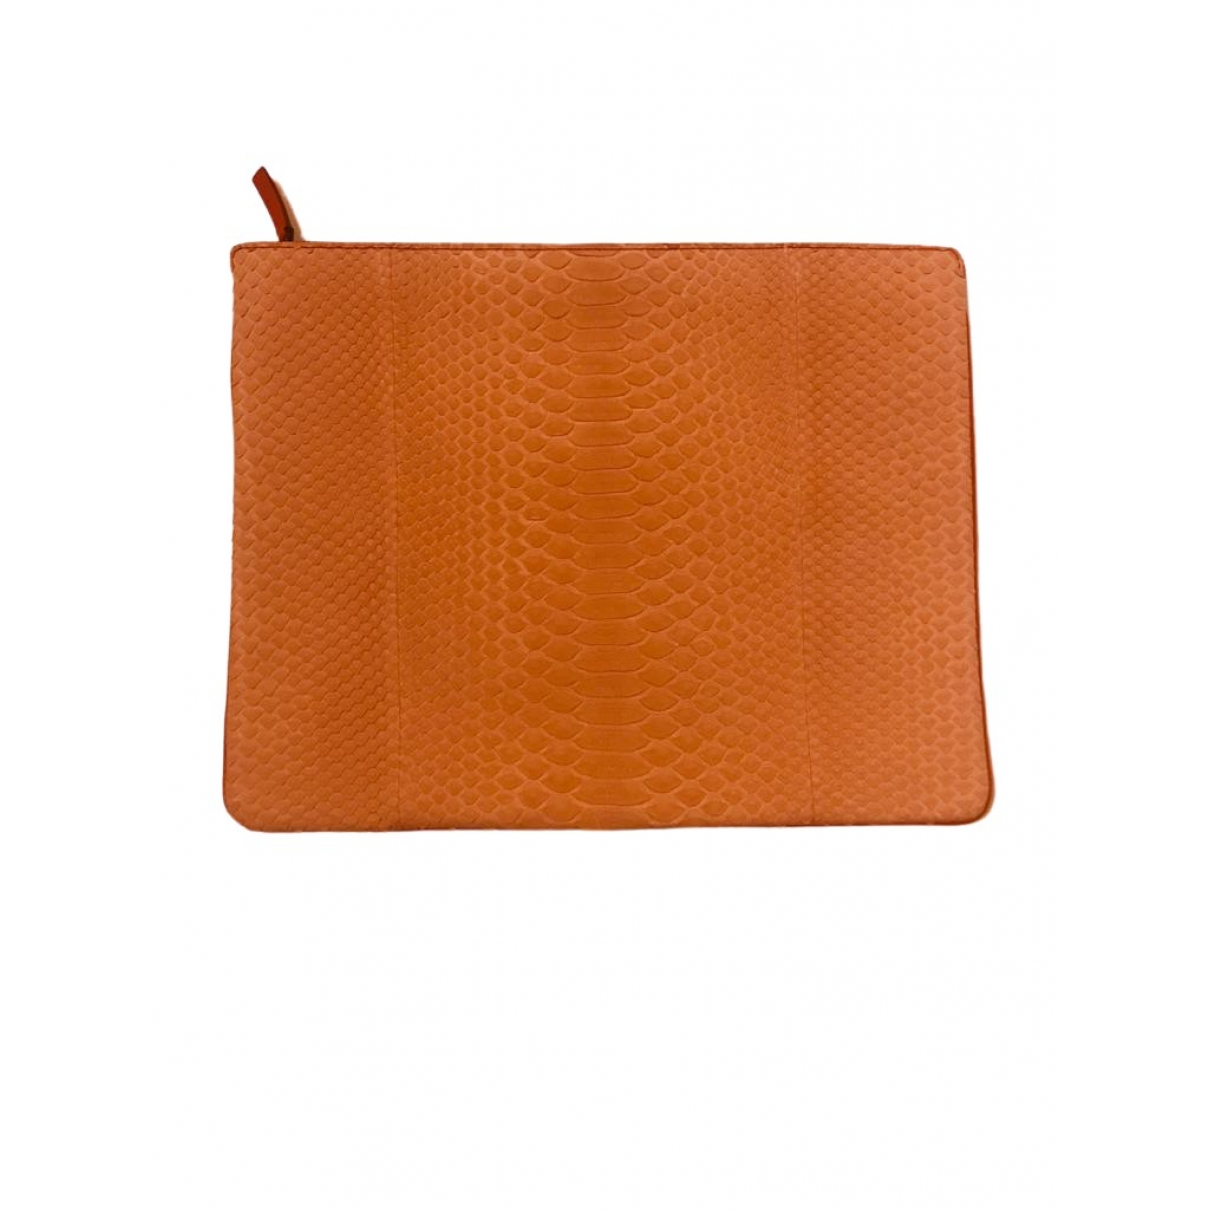 Delvaux \N Orange Python Clutch bag for Women \N